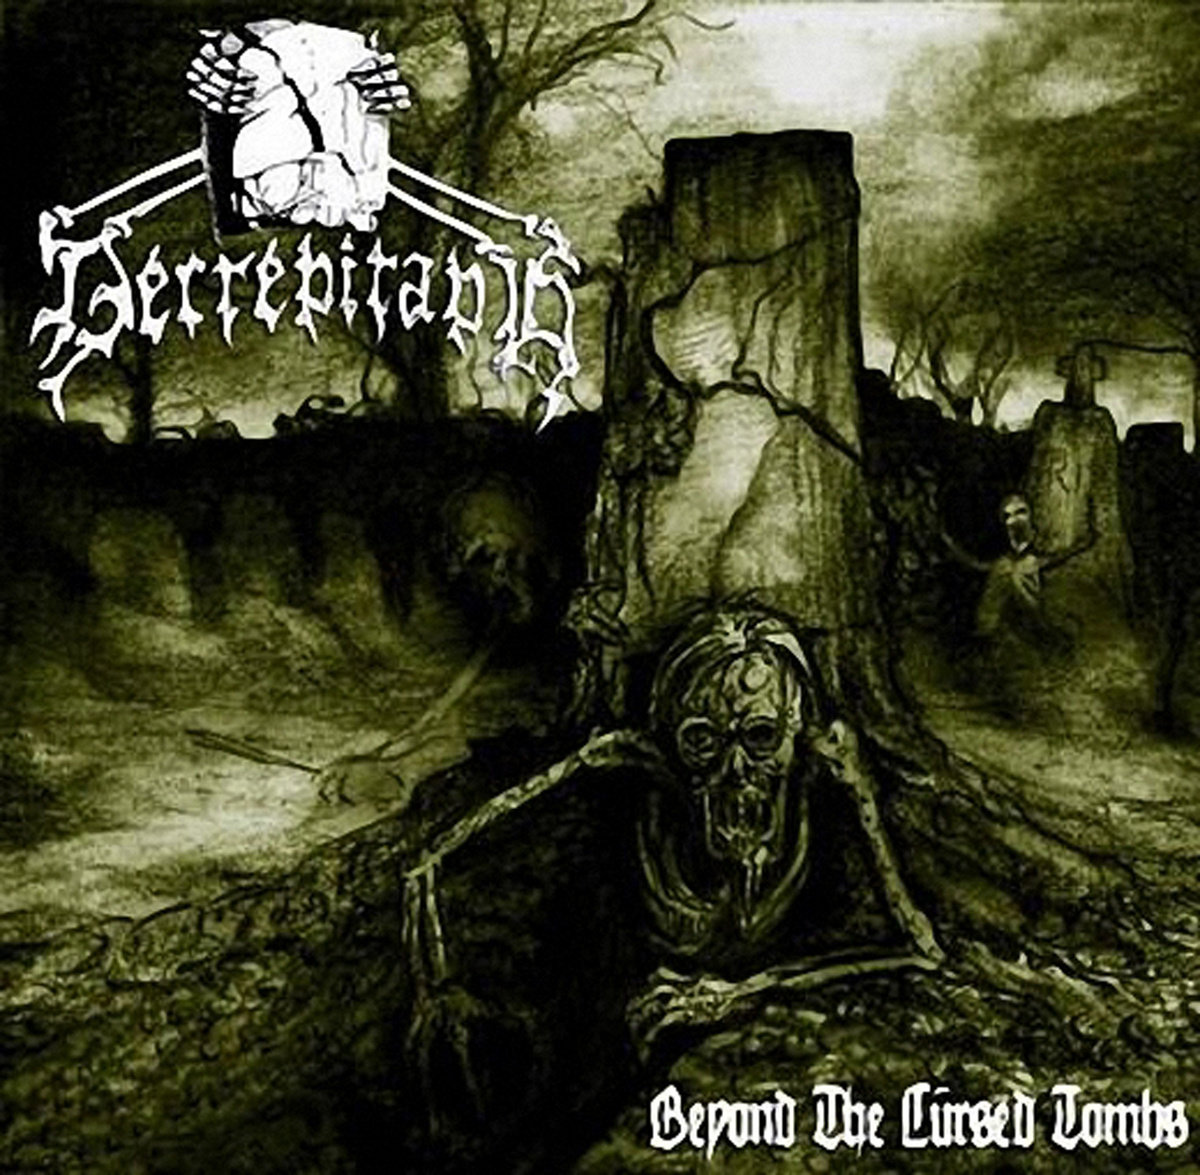 decrepitaph beyond the cursed tombs